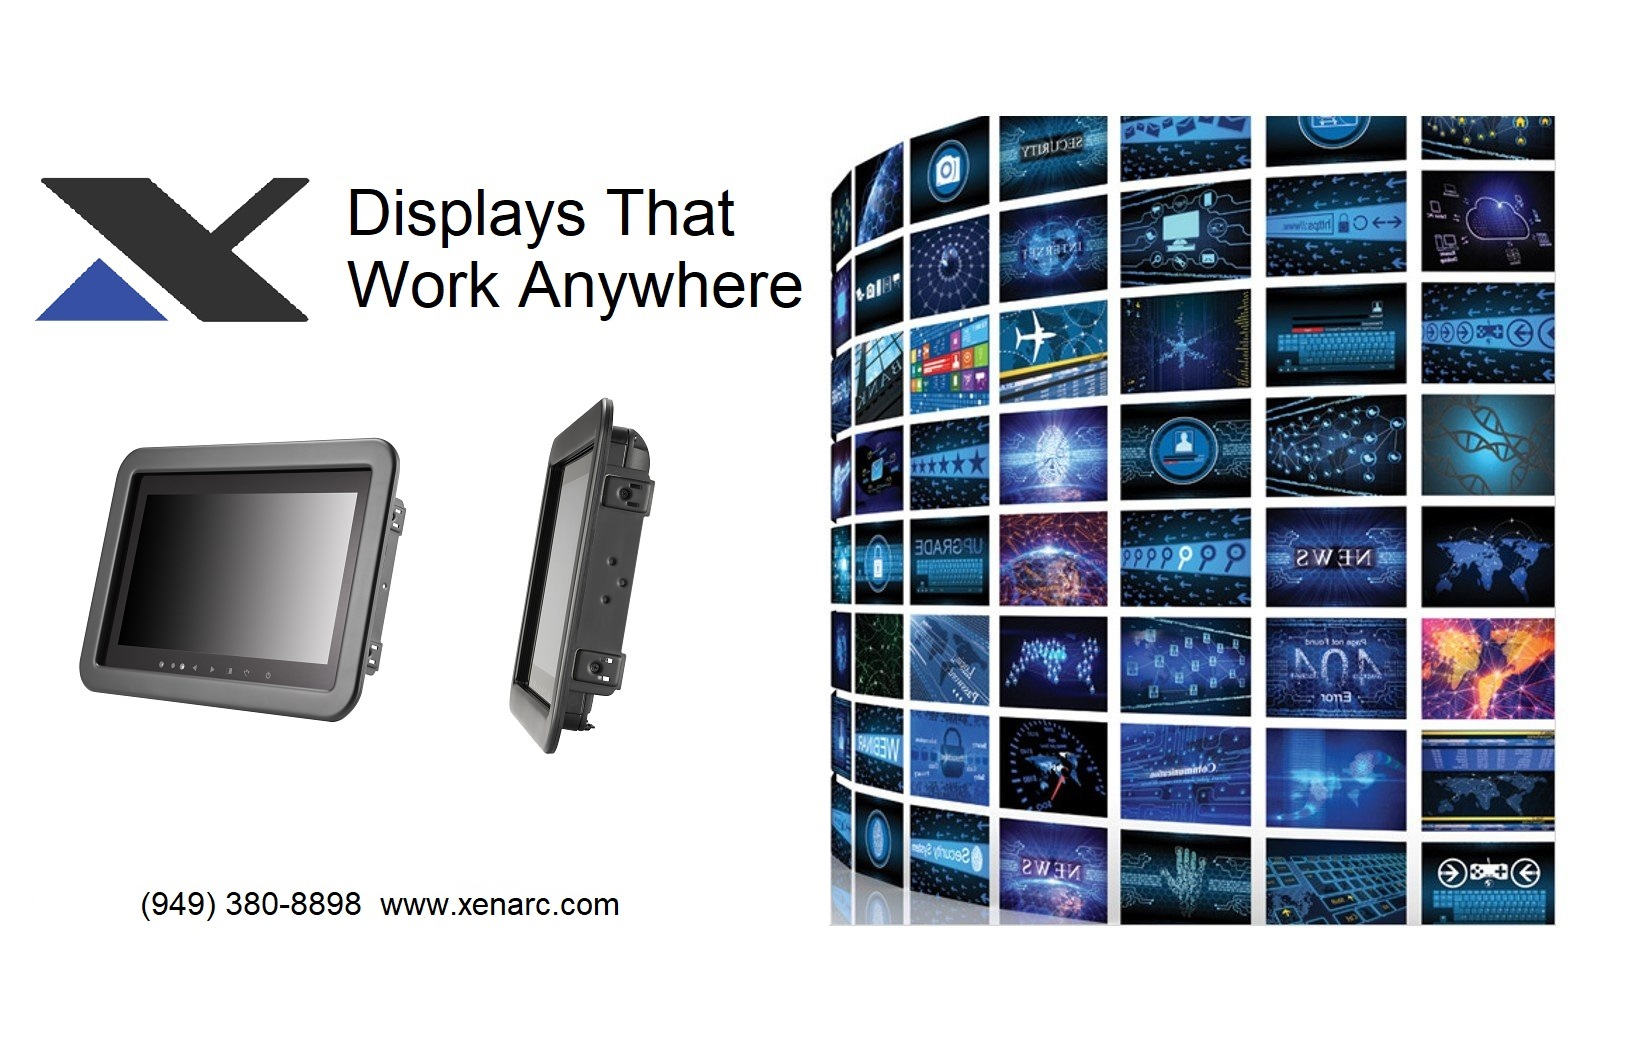 Gaming and Digital Signage Displays Touch Screen Solutions www.xenarc.com